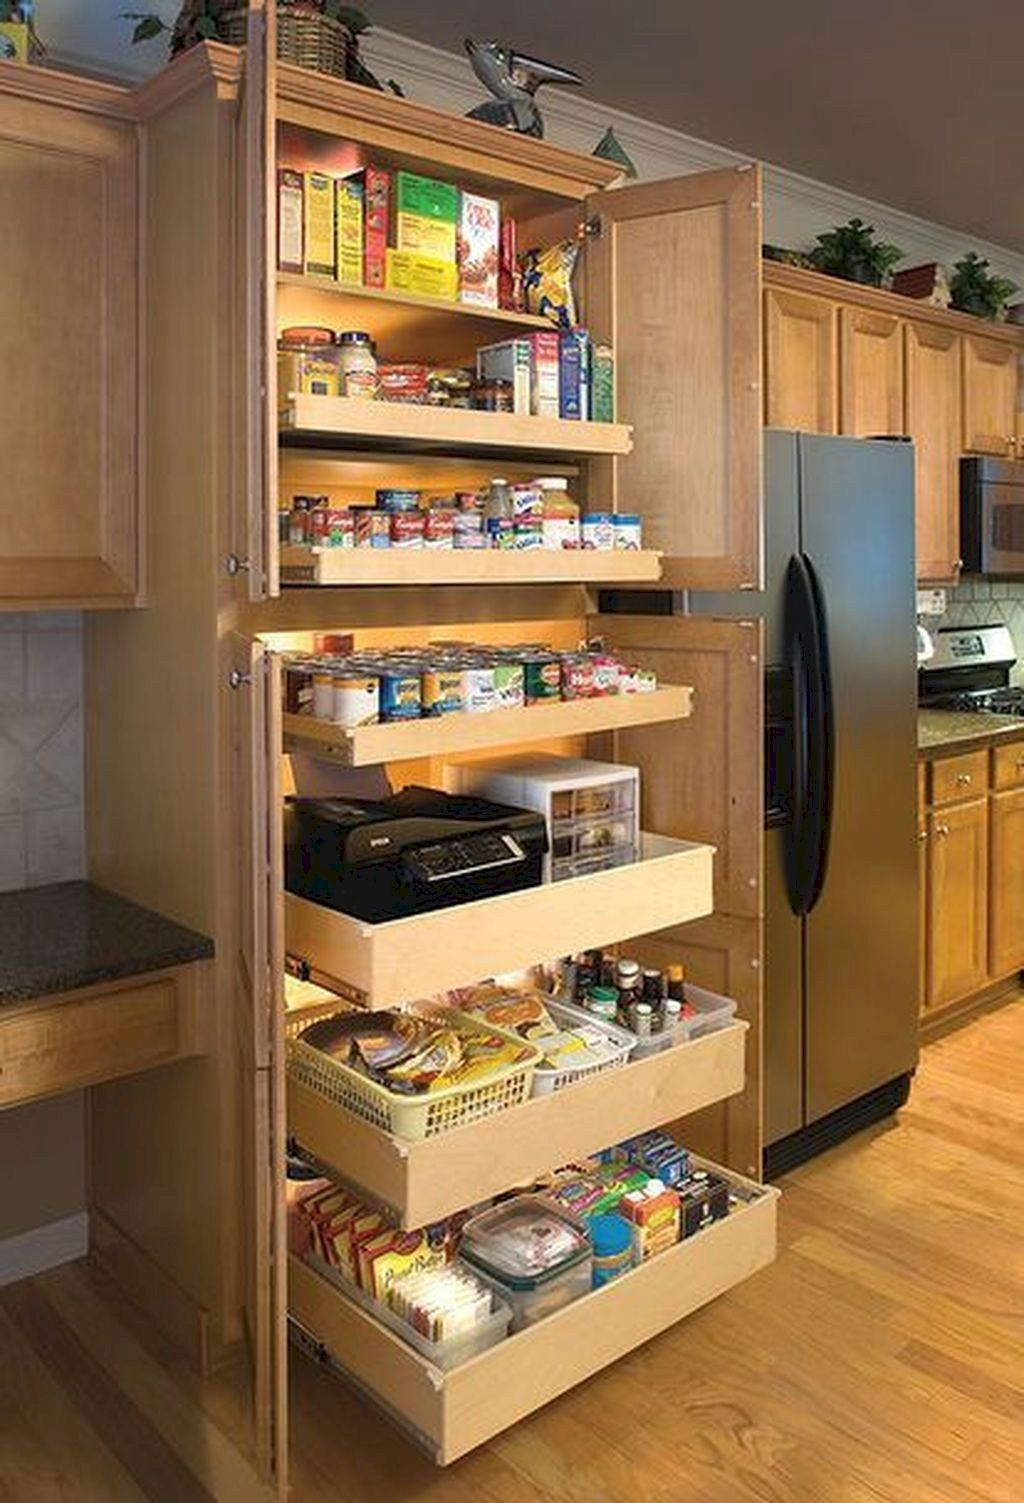 pin by kelsie on kitchen diy kitchen storage clever on clever ideas for diy kitchen cabinet organization tips for organizers id=51591